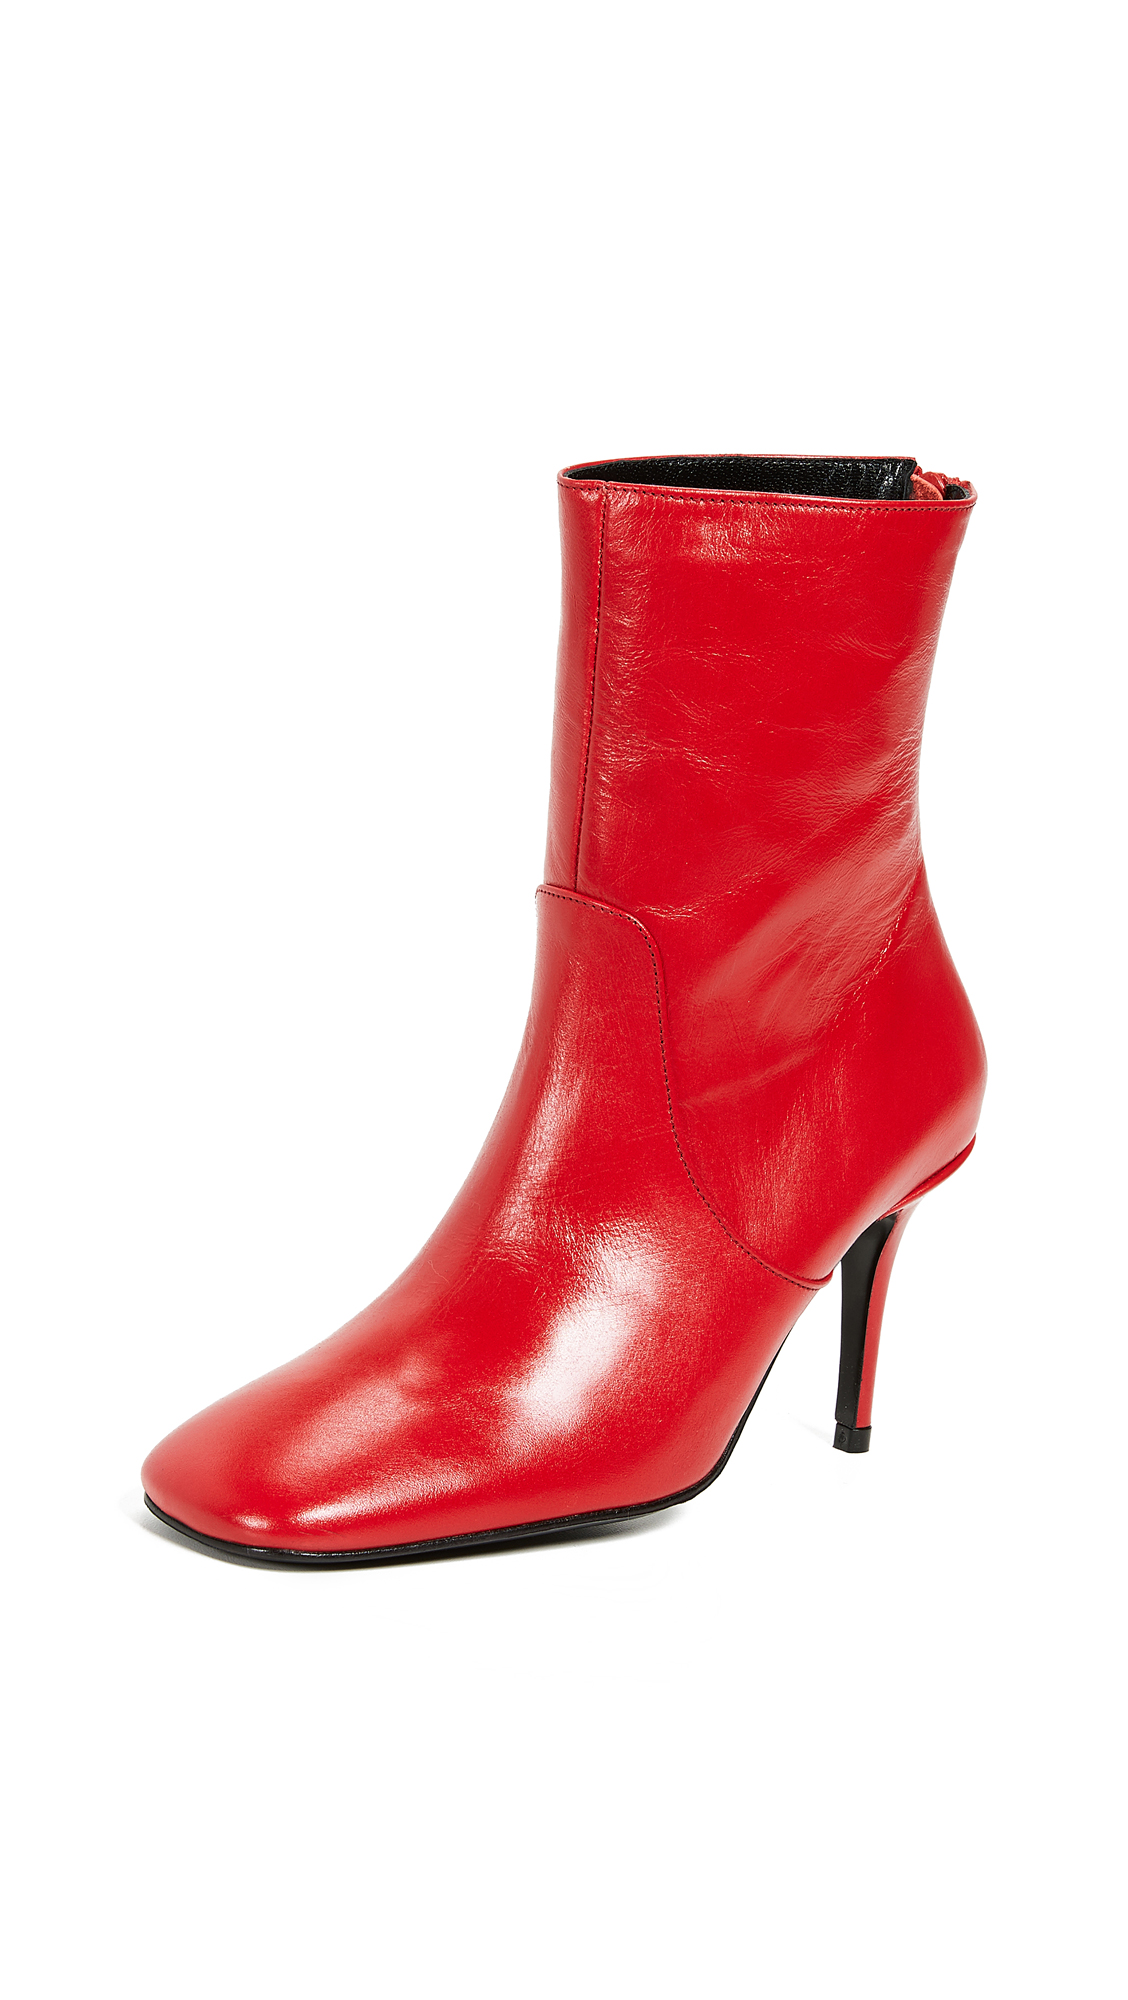 Dorateymur Town & Country Boots - Red